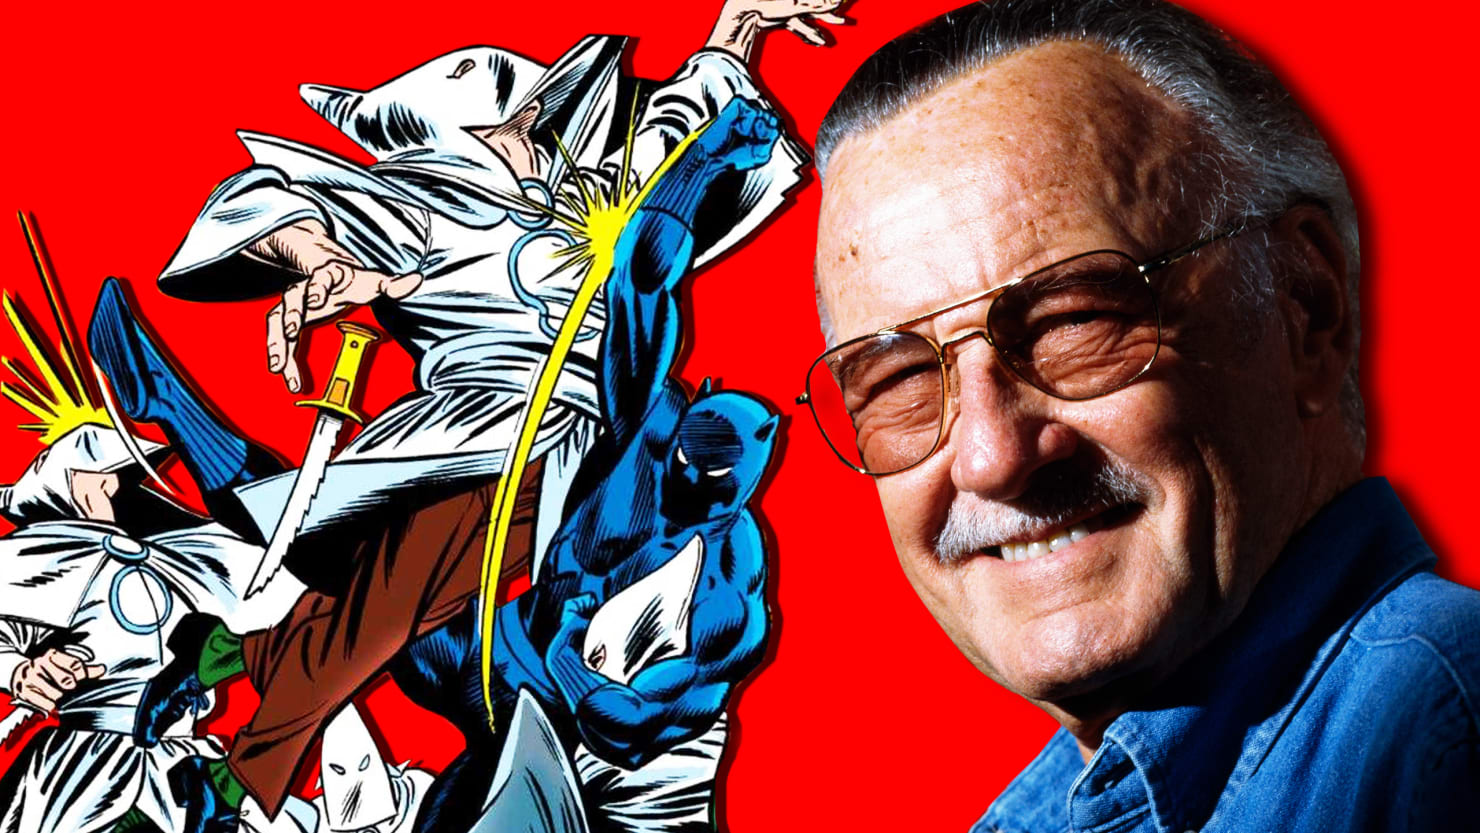 thedailybeast.com - Stereo Williams - Stan Lee's Biggest Enemy Was Racists: 'The Only Way to Destroy Them Is to Expose Them'